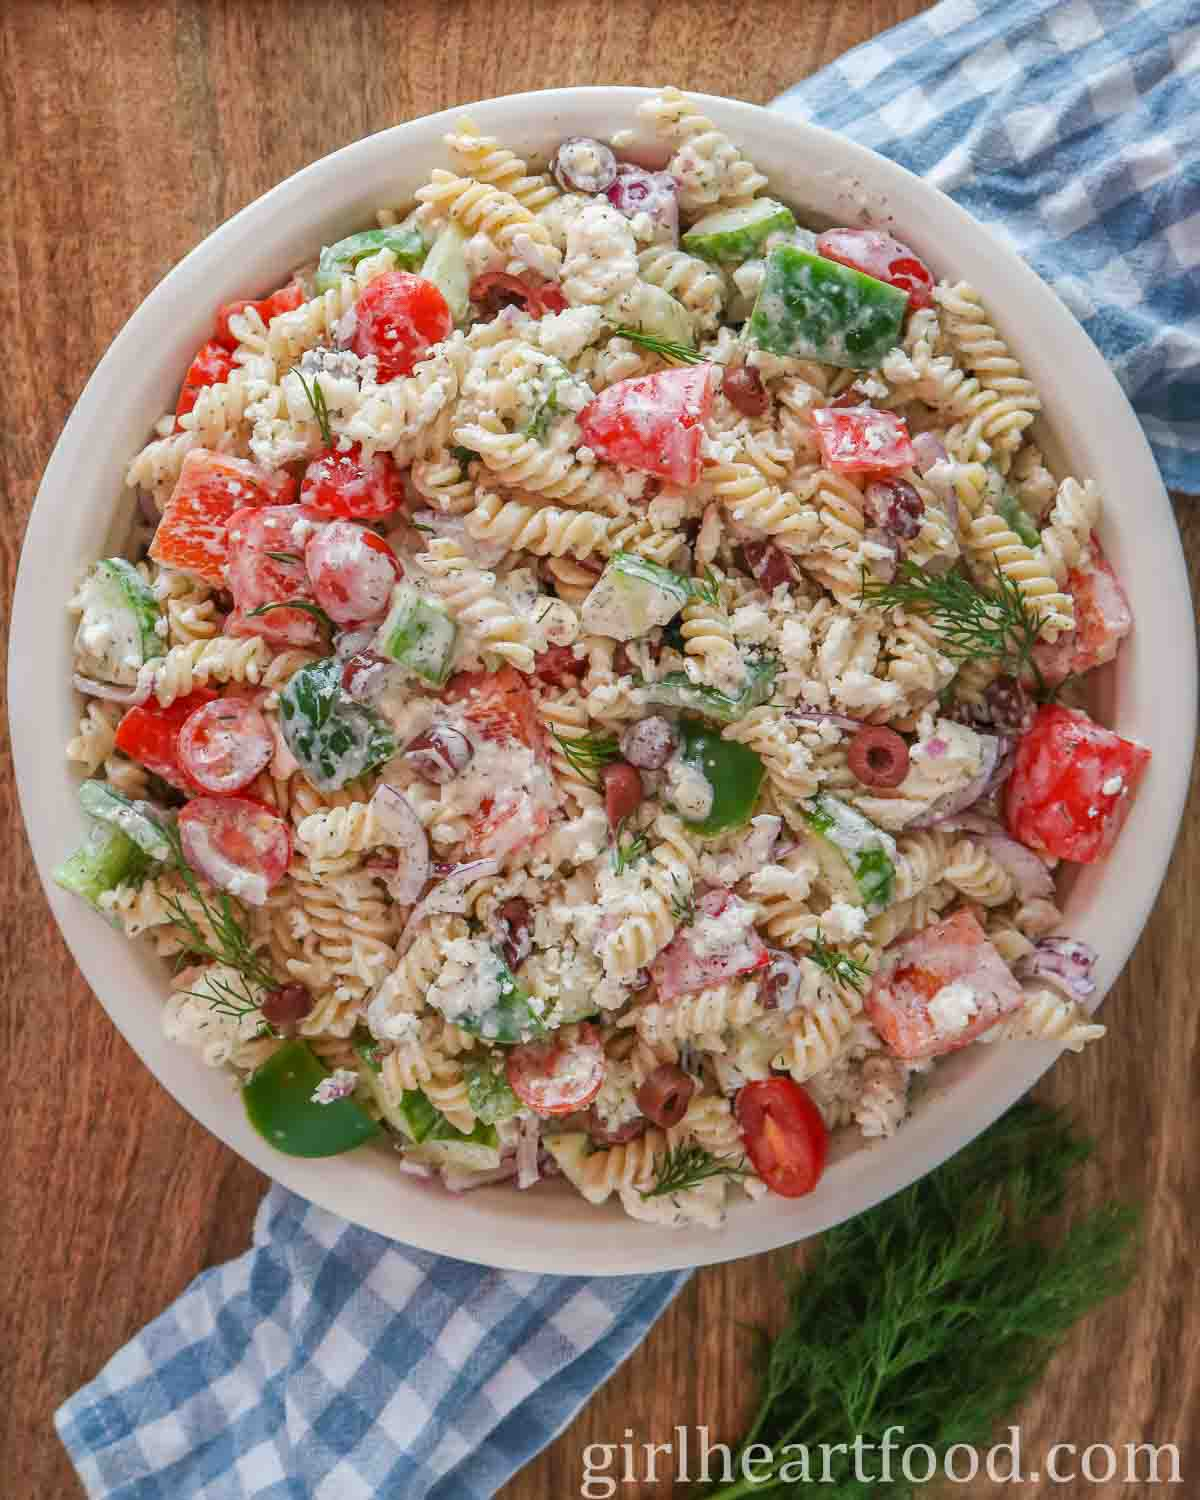 Large round dish of gluten free pasta salad with vegetables, feta, olives and creamy dressing.